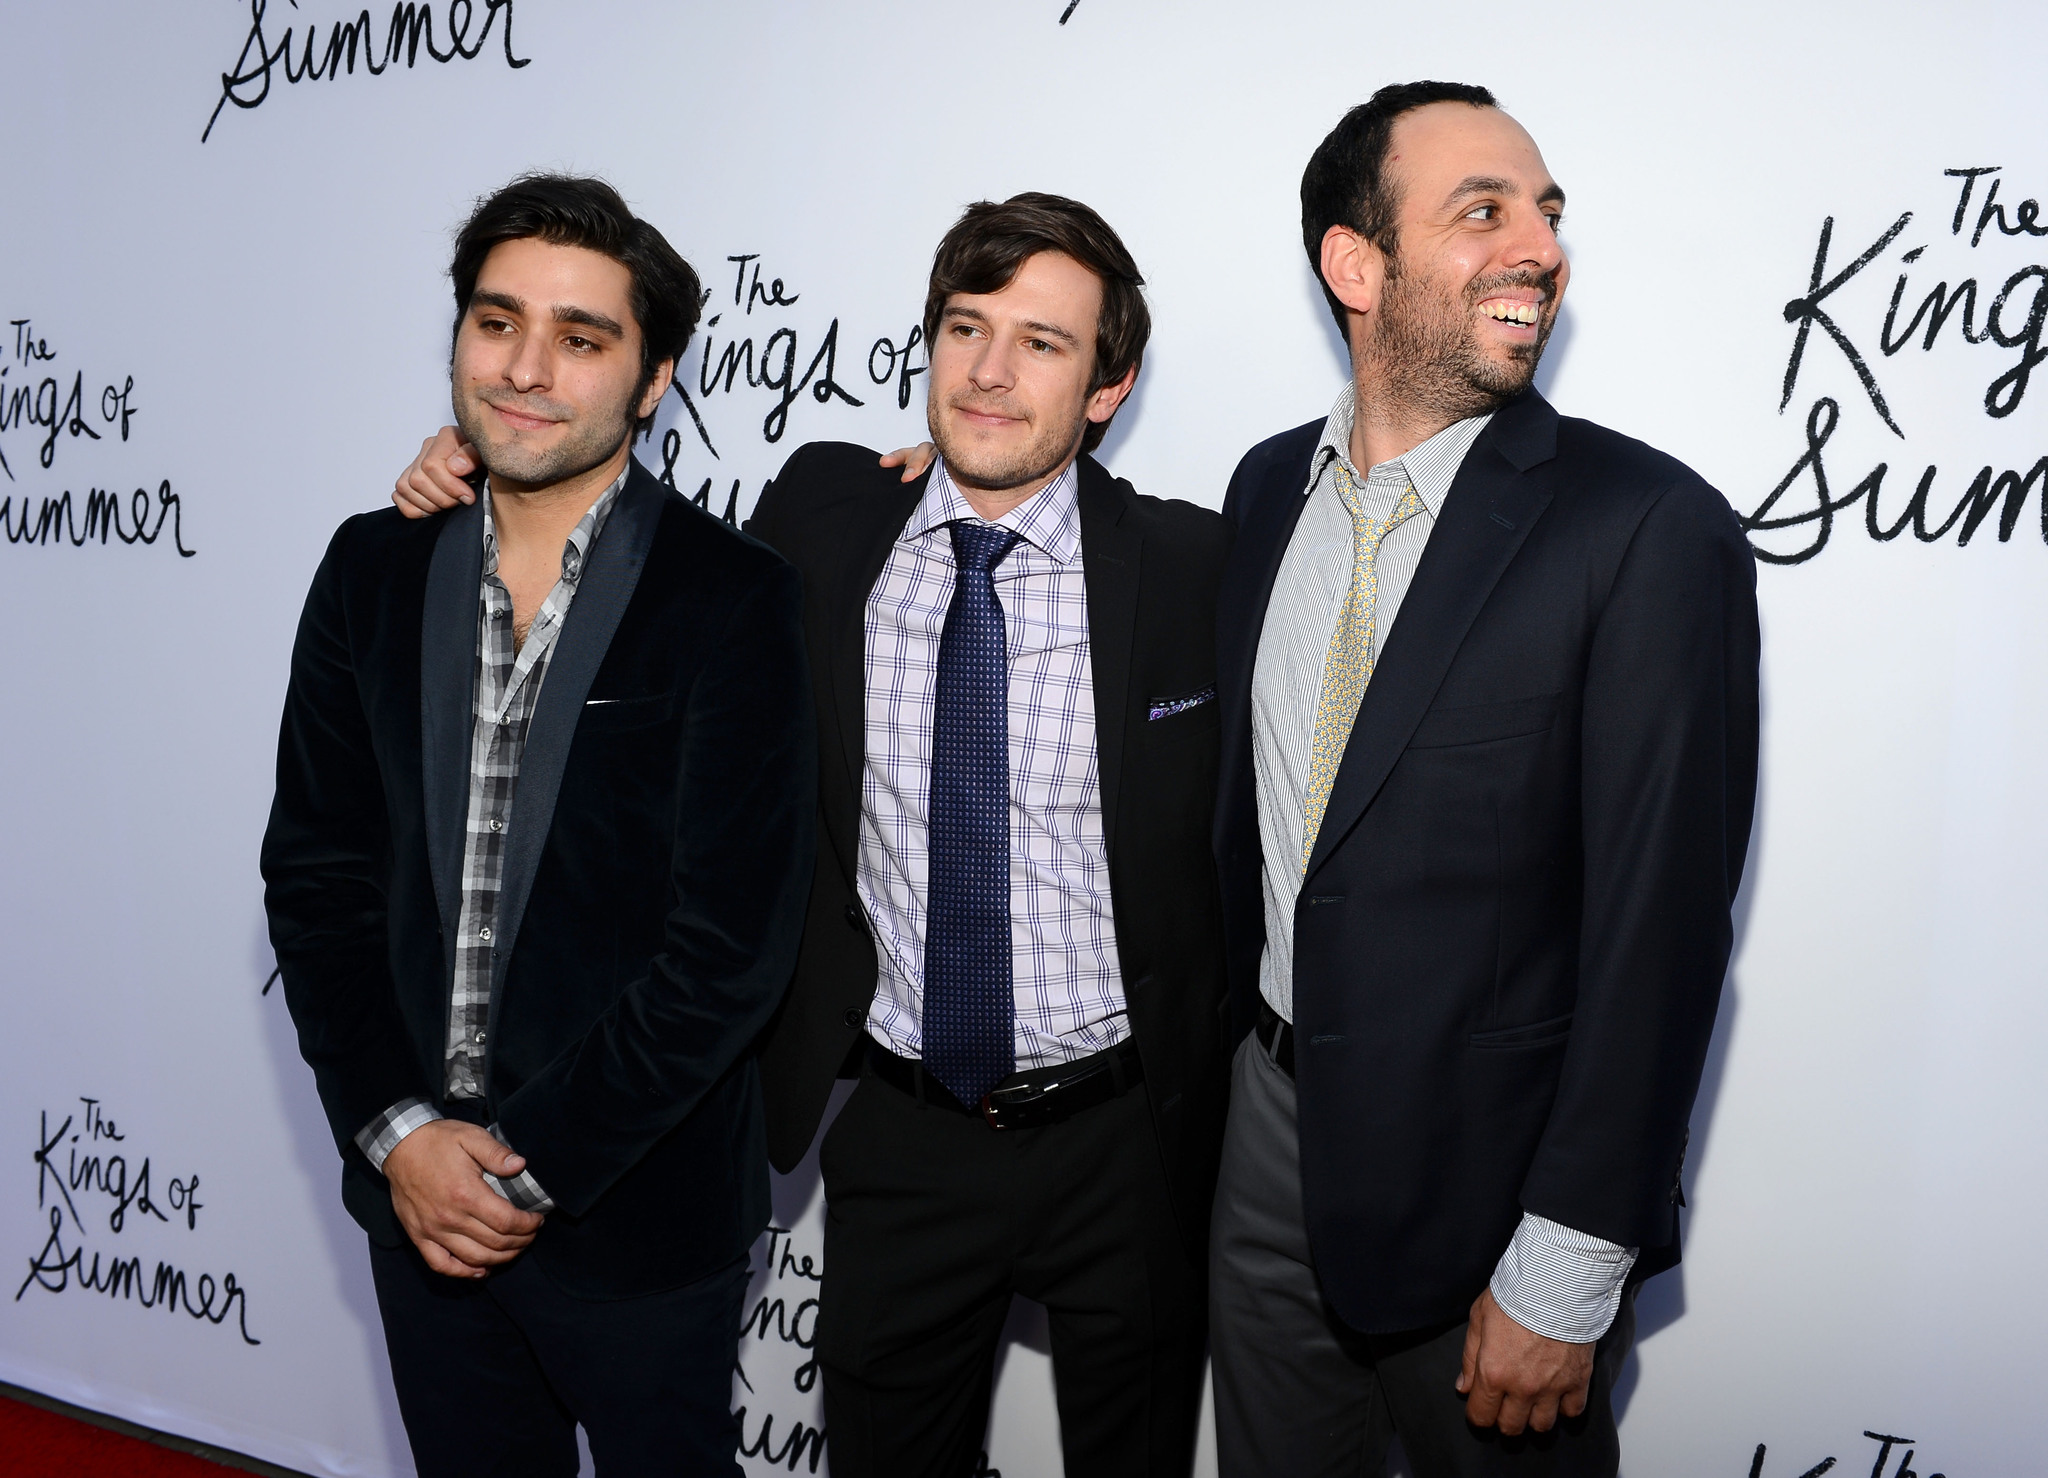 Ross Riege, Jordan Vogt-Roberts, and Chris Galletta at an event for The Kings of Summer (2013)